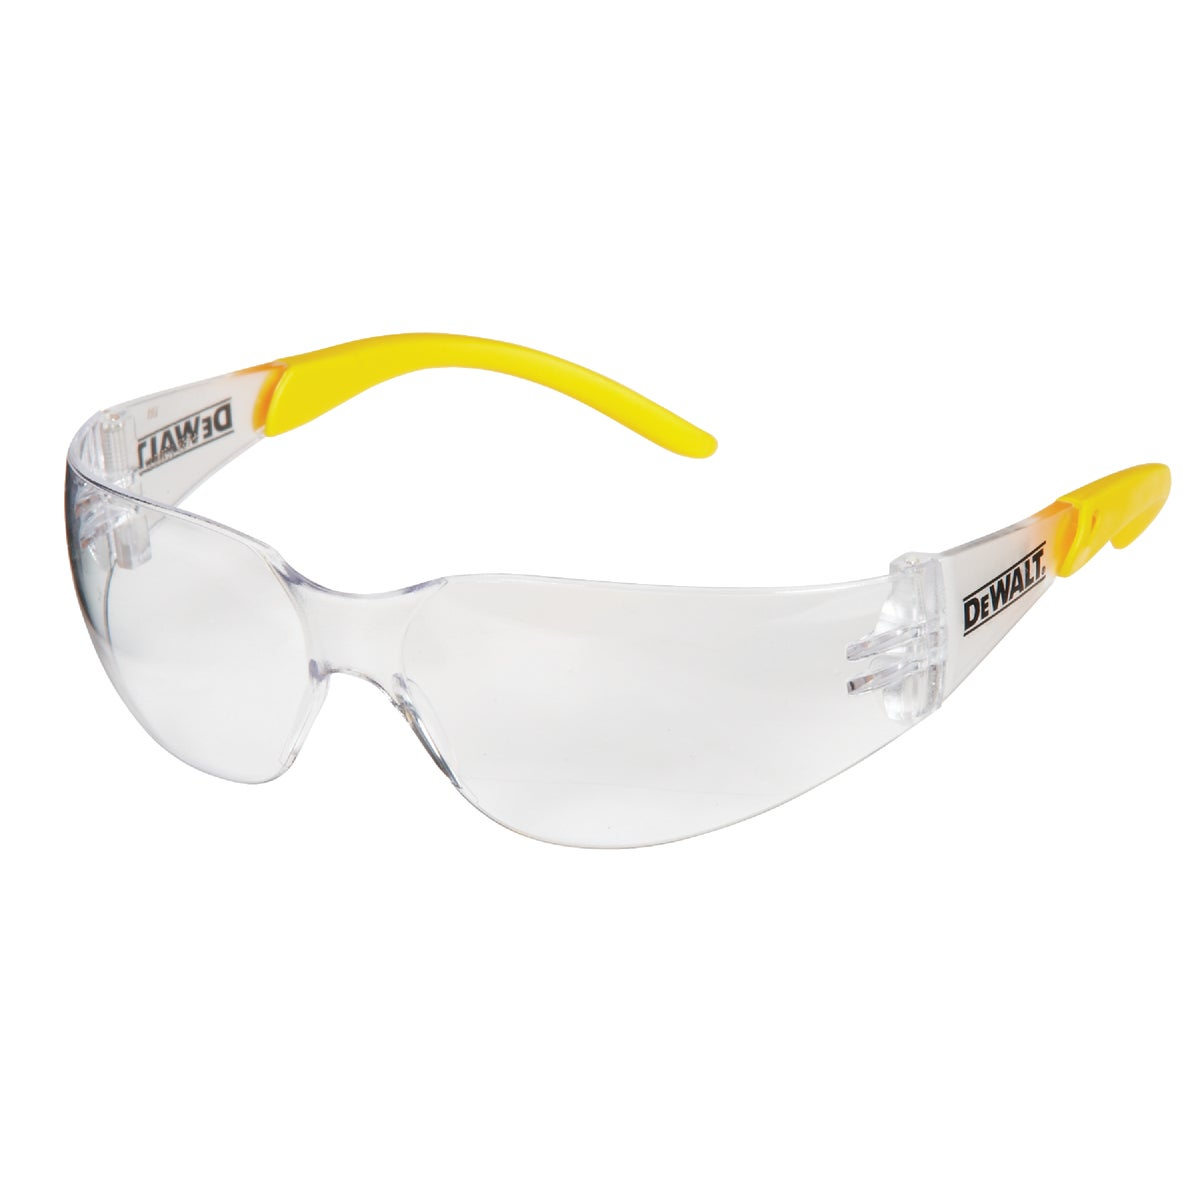 CLEAR SAFETY GLASSES - DPG54-1C by Radians